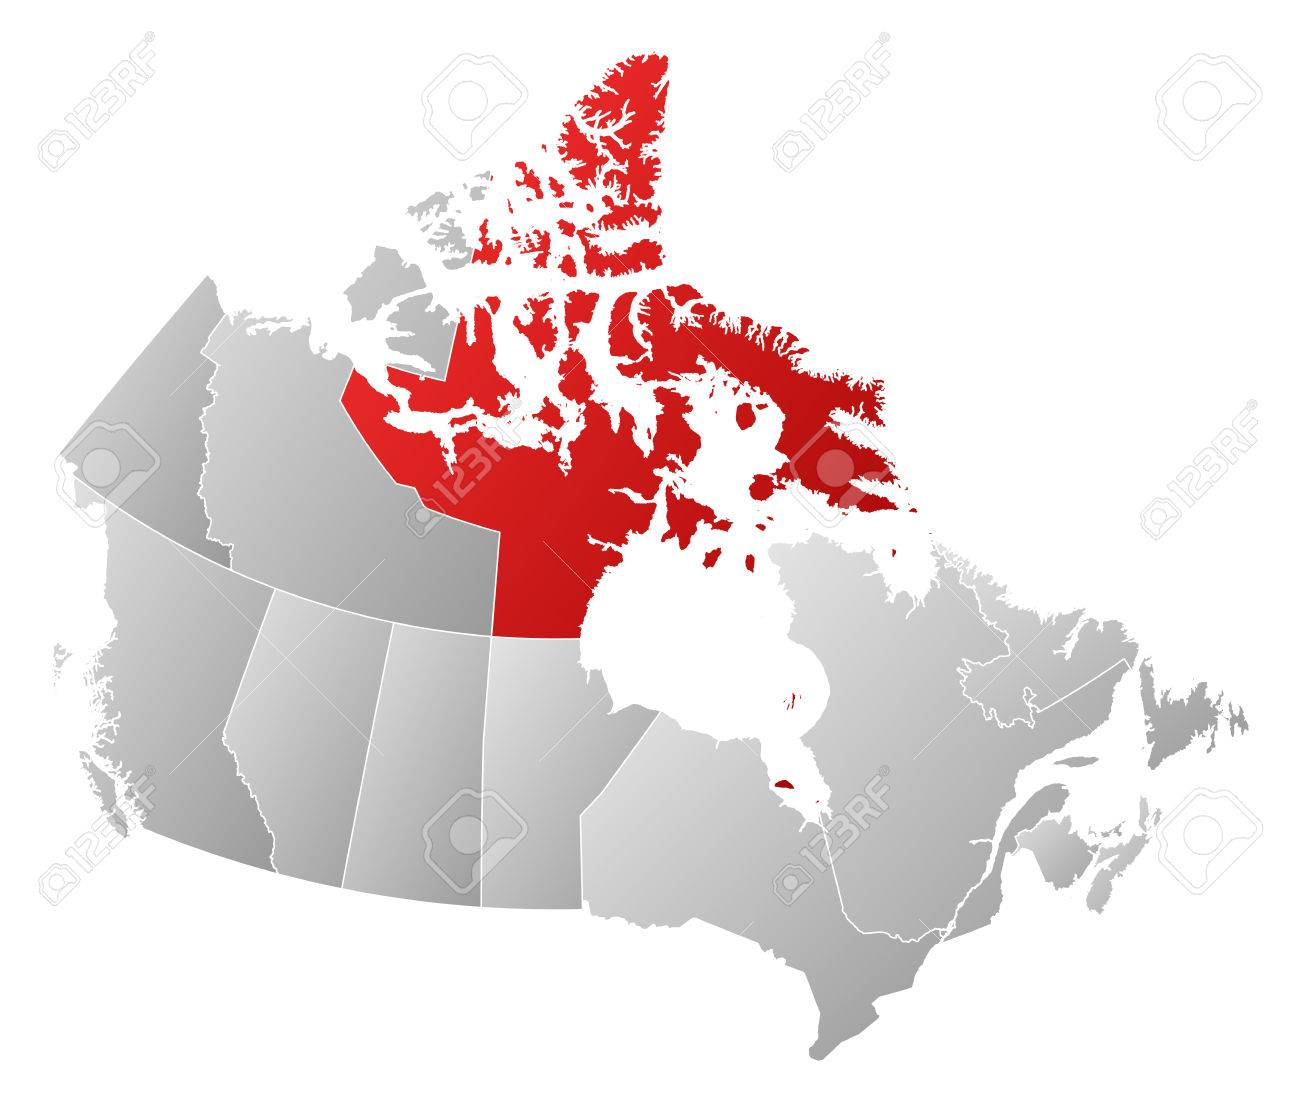 Map Of Canada Nunavut.Map Of Canada With The Provinces Filled With A Linear Gradient